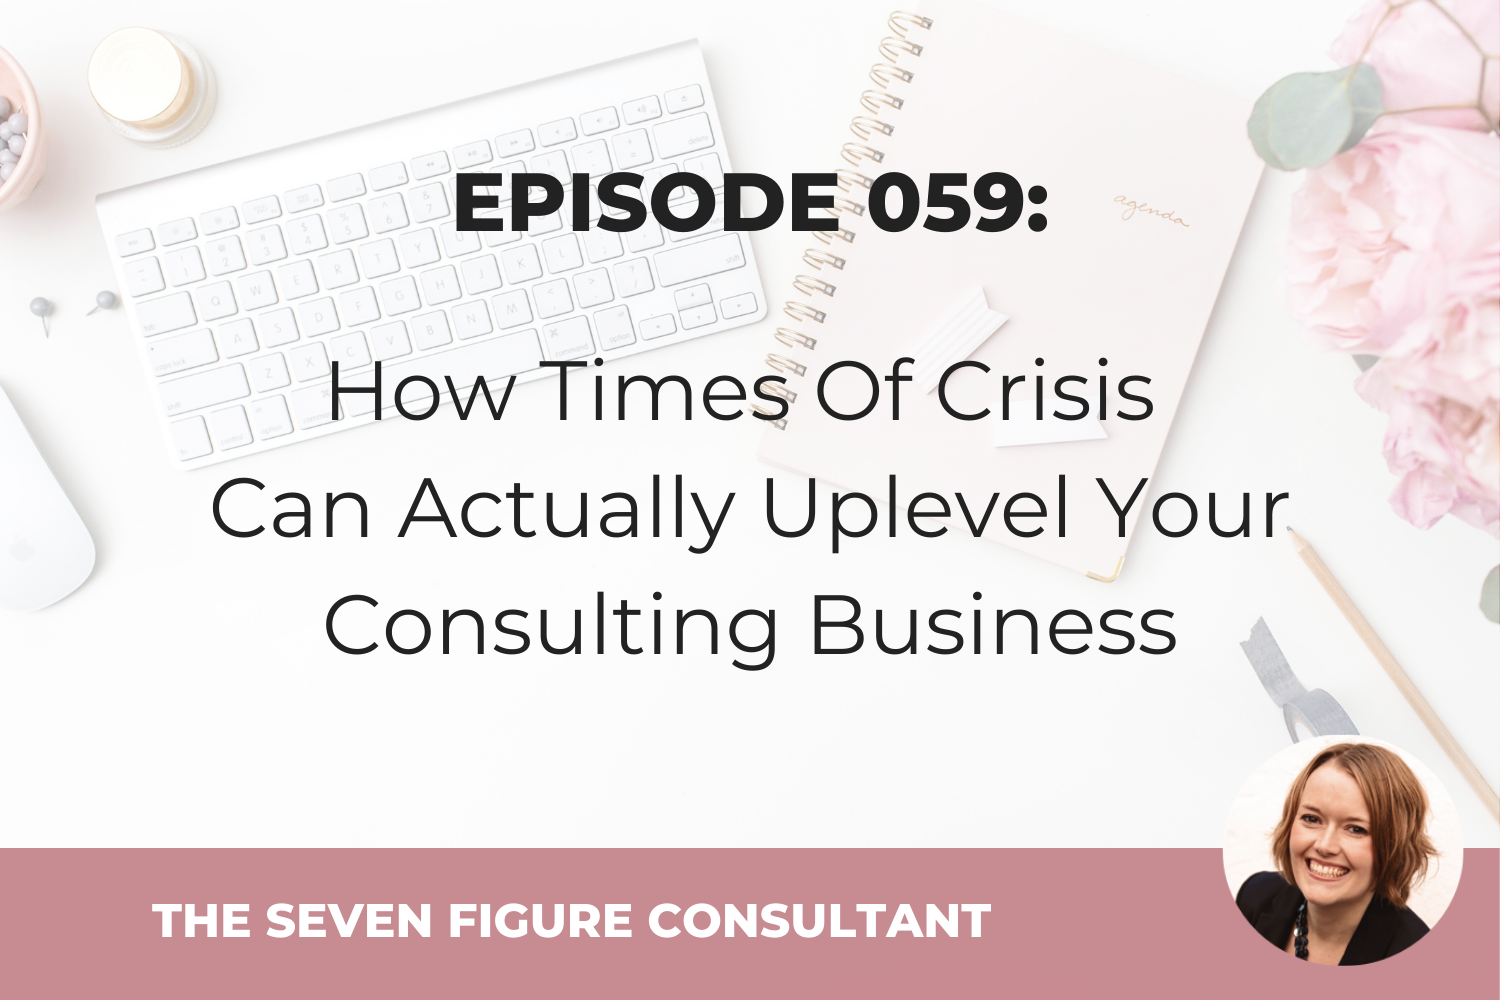 Episode 059: How Times Of Crisis Can Actually Uplevel Your Consulting Business